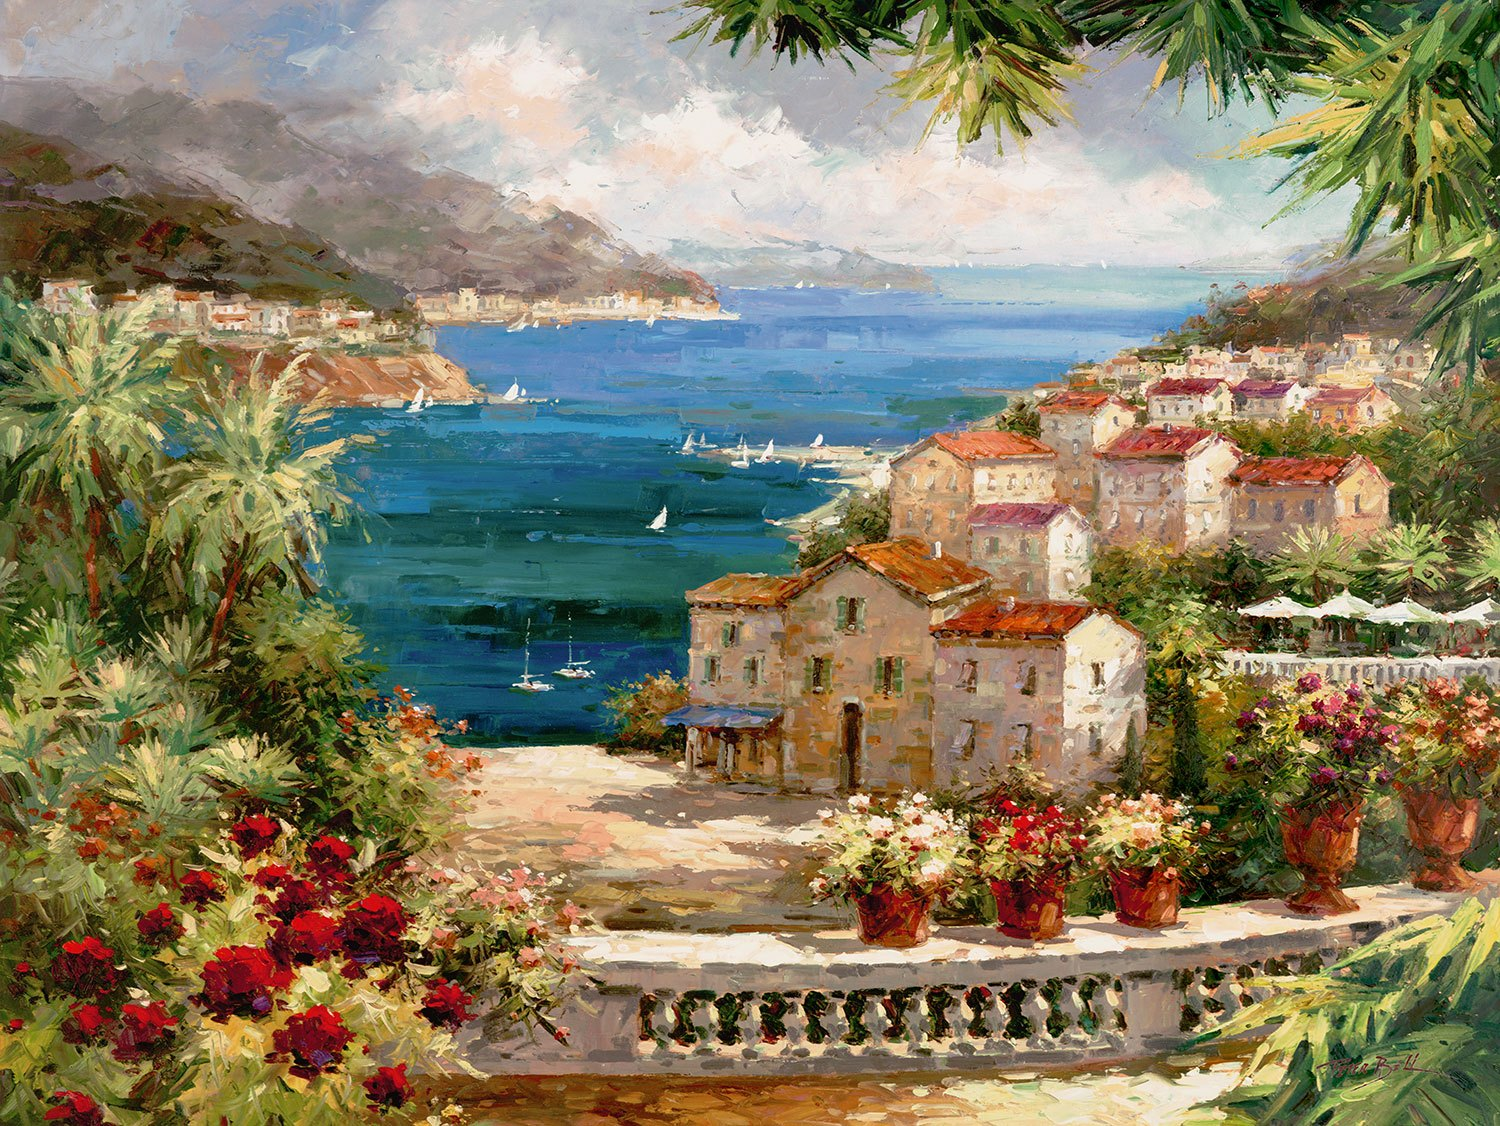 Fototapeten: Harbor Vista (Peter Bell)